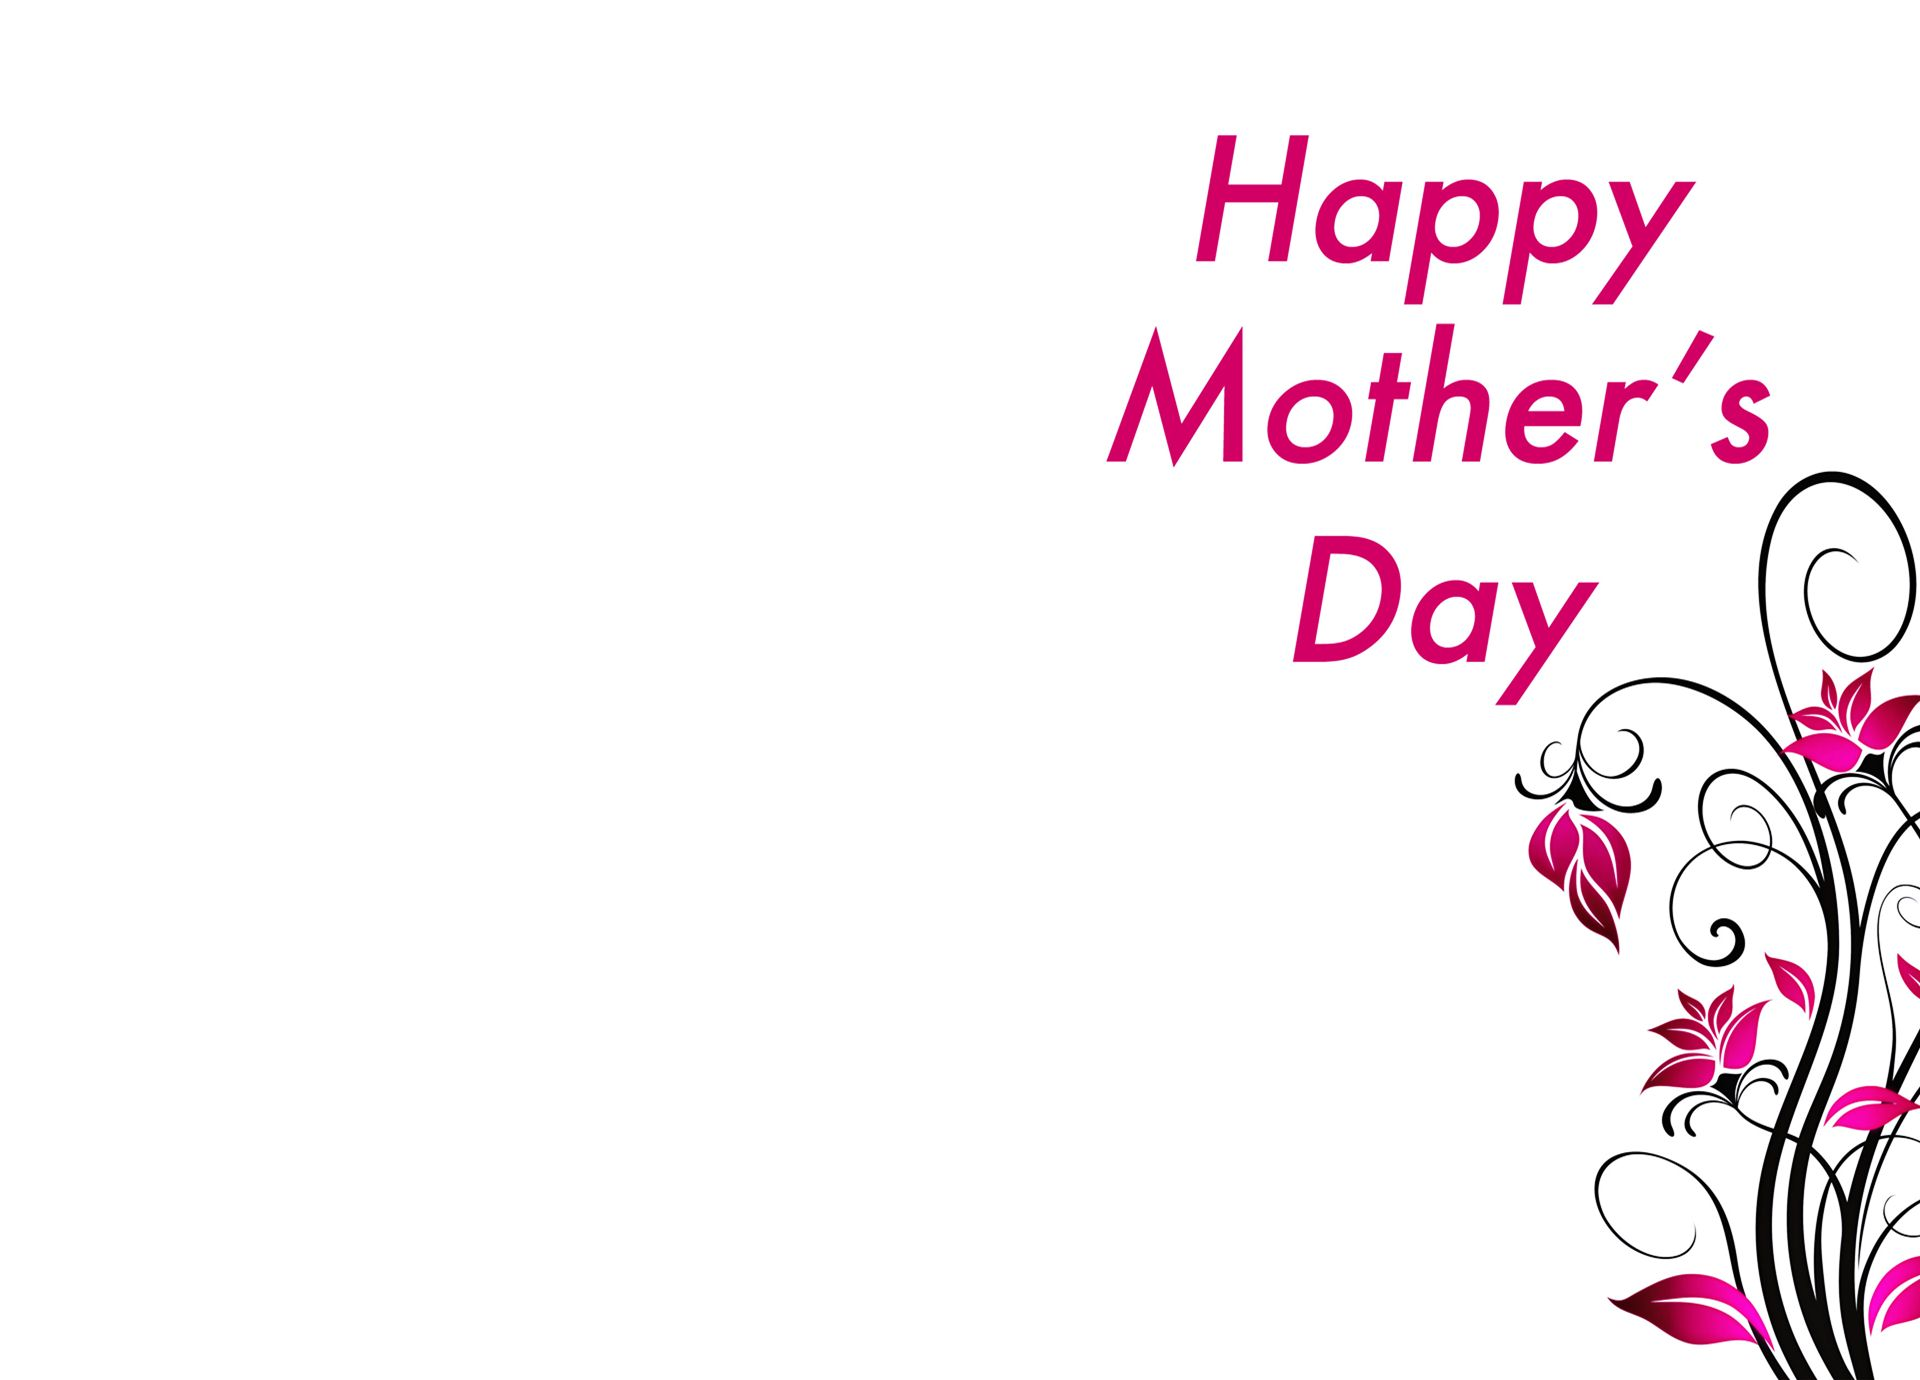 our real god mothers day wallpaper hd images picture download